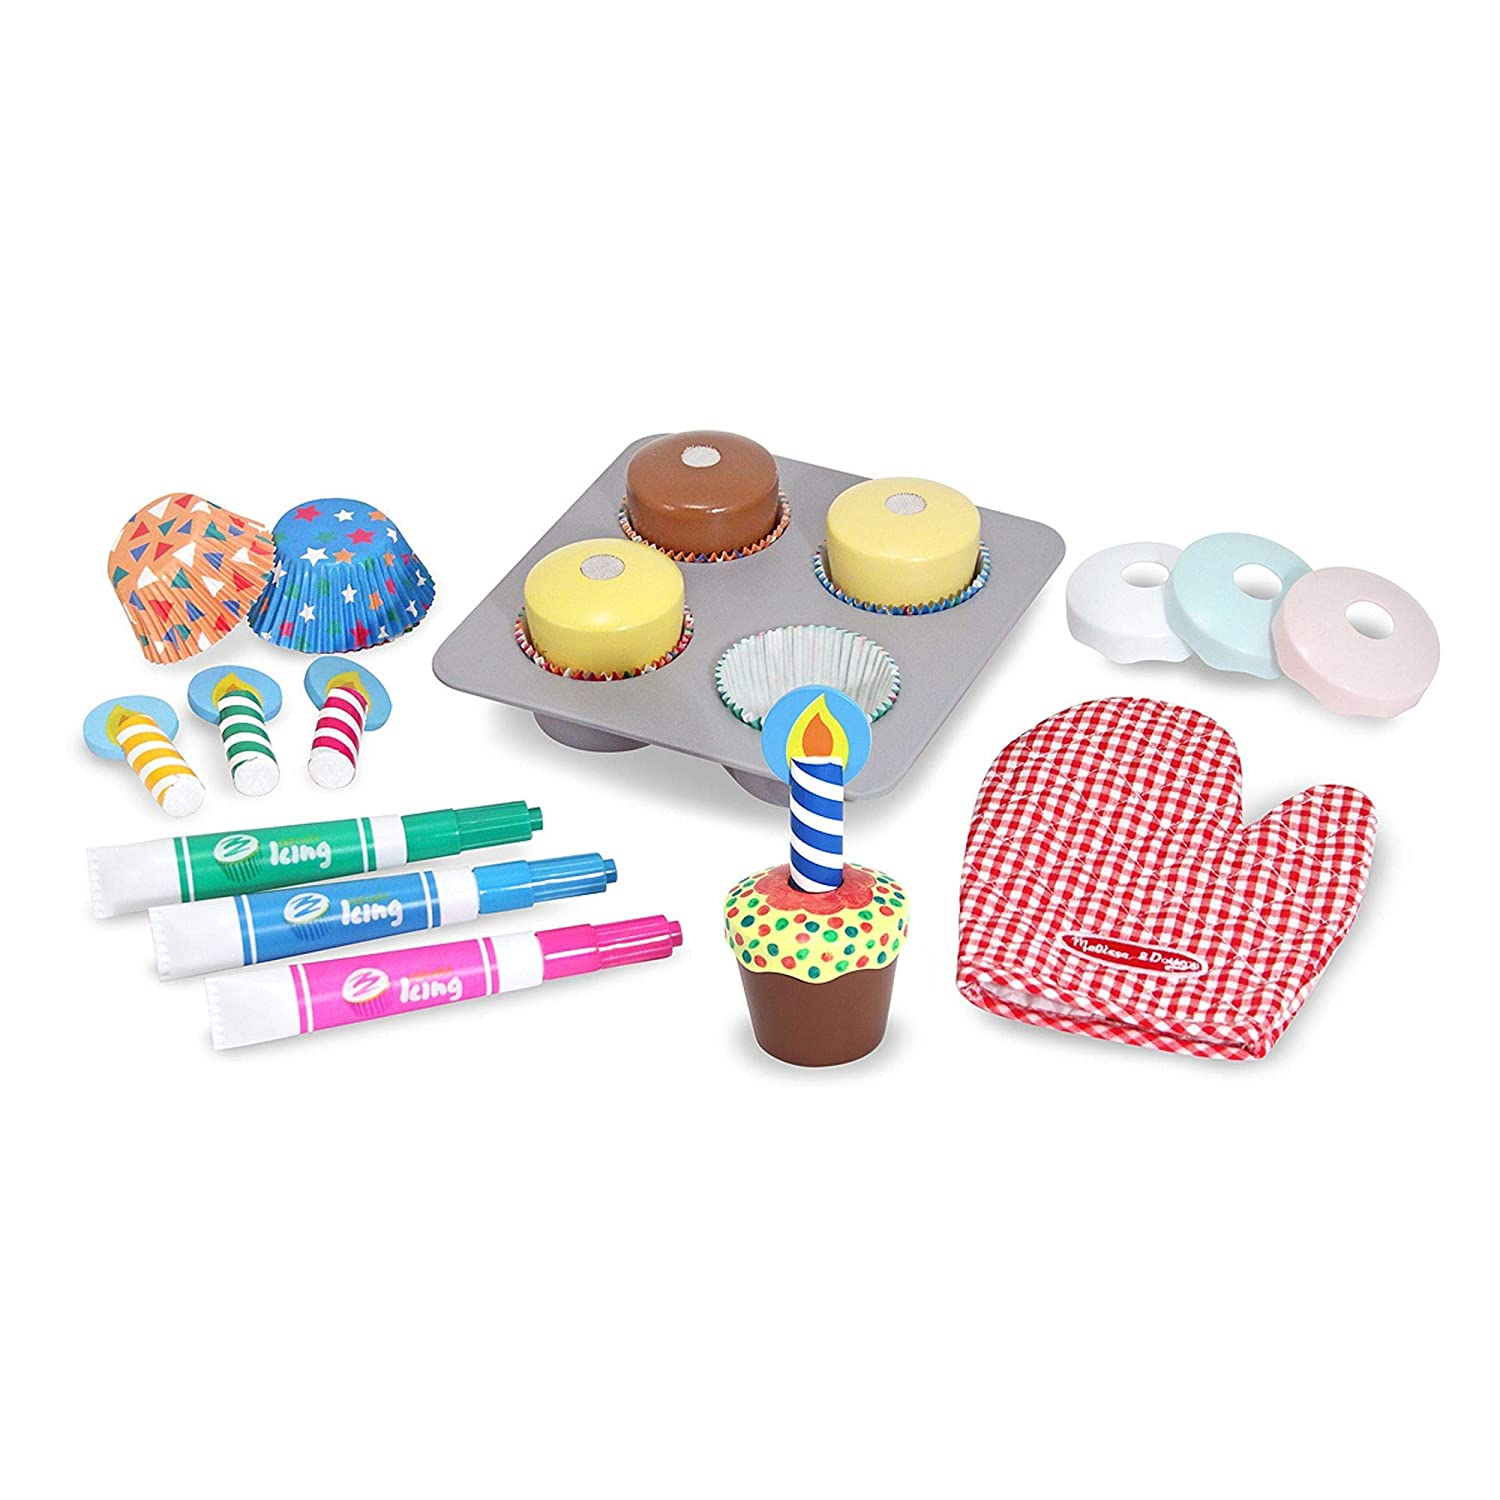 Melissa & Doug Bake & Decorate Cupcake Set (Pretend Play, Colorful Wooden Play-Food Set, Materials, 22 Pieces, Great Gift for Girls and Boys - Best for 3, 4, and 5 Year Olds) (Renewed)